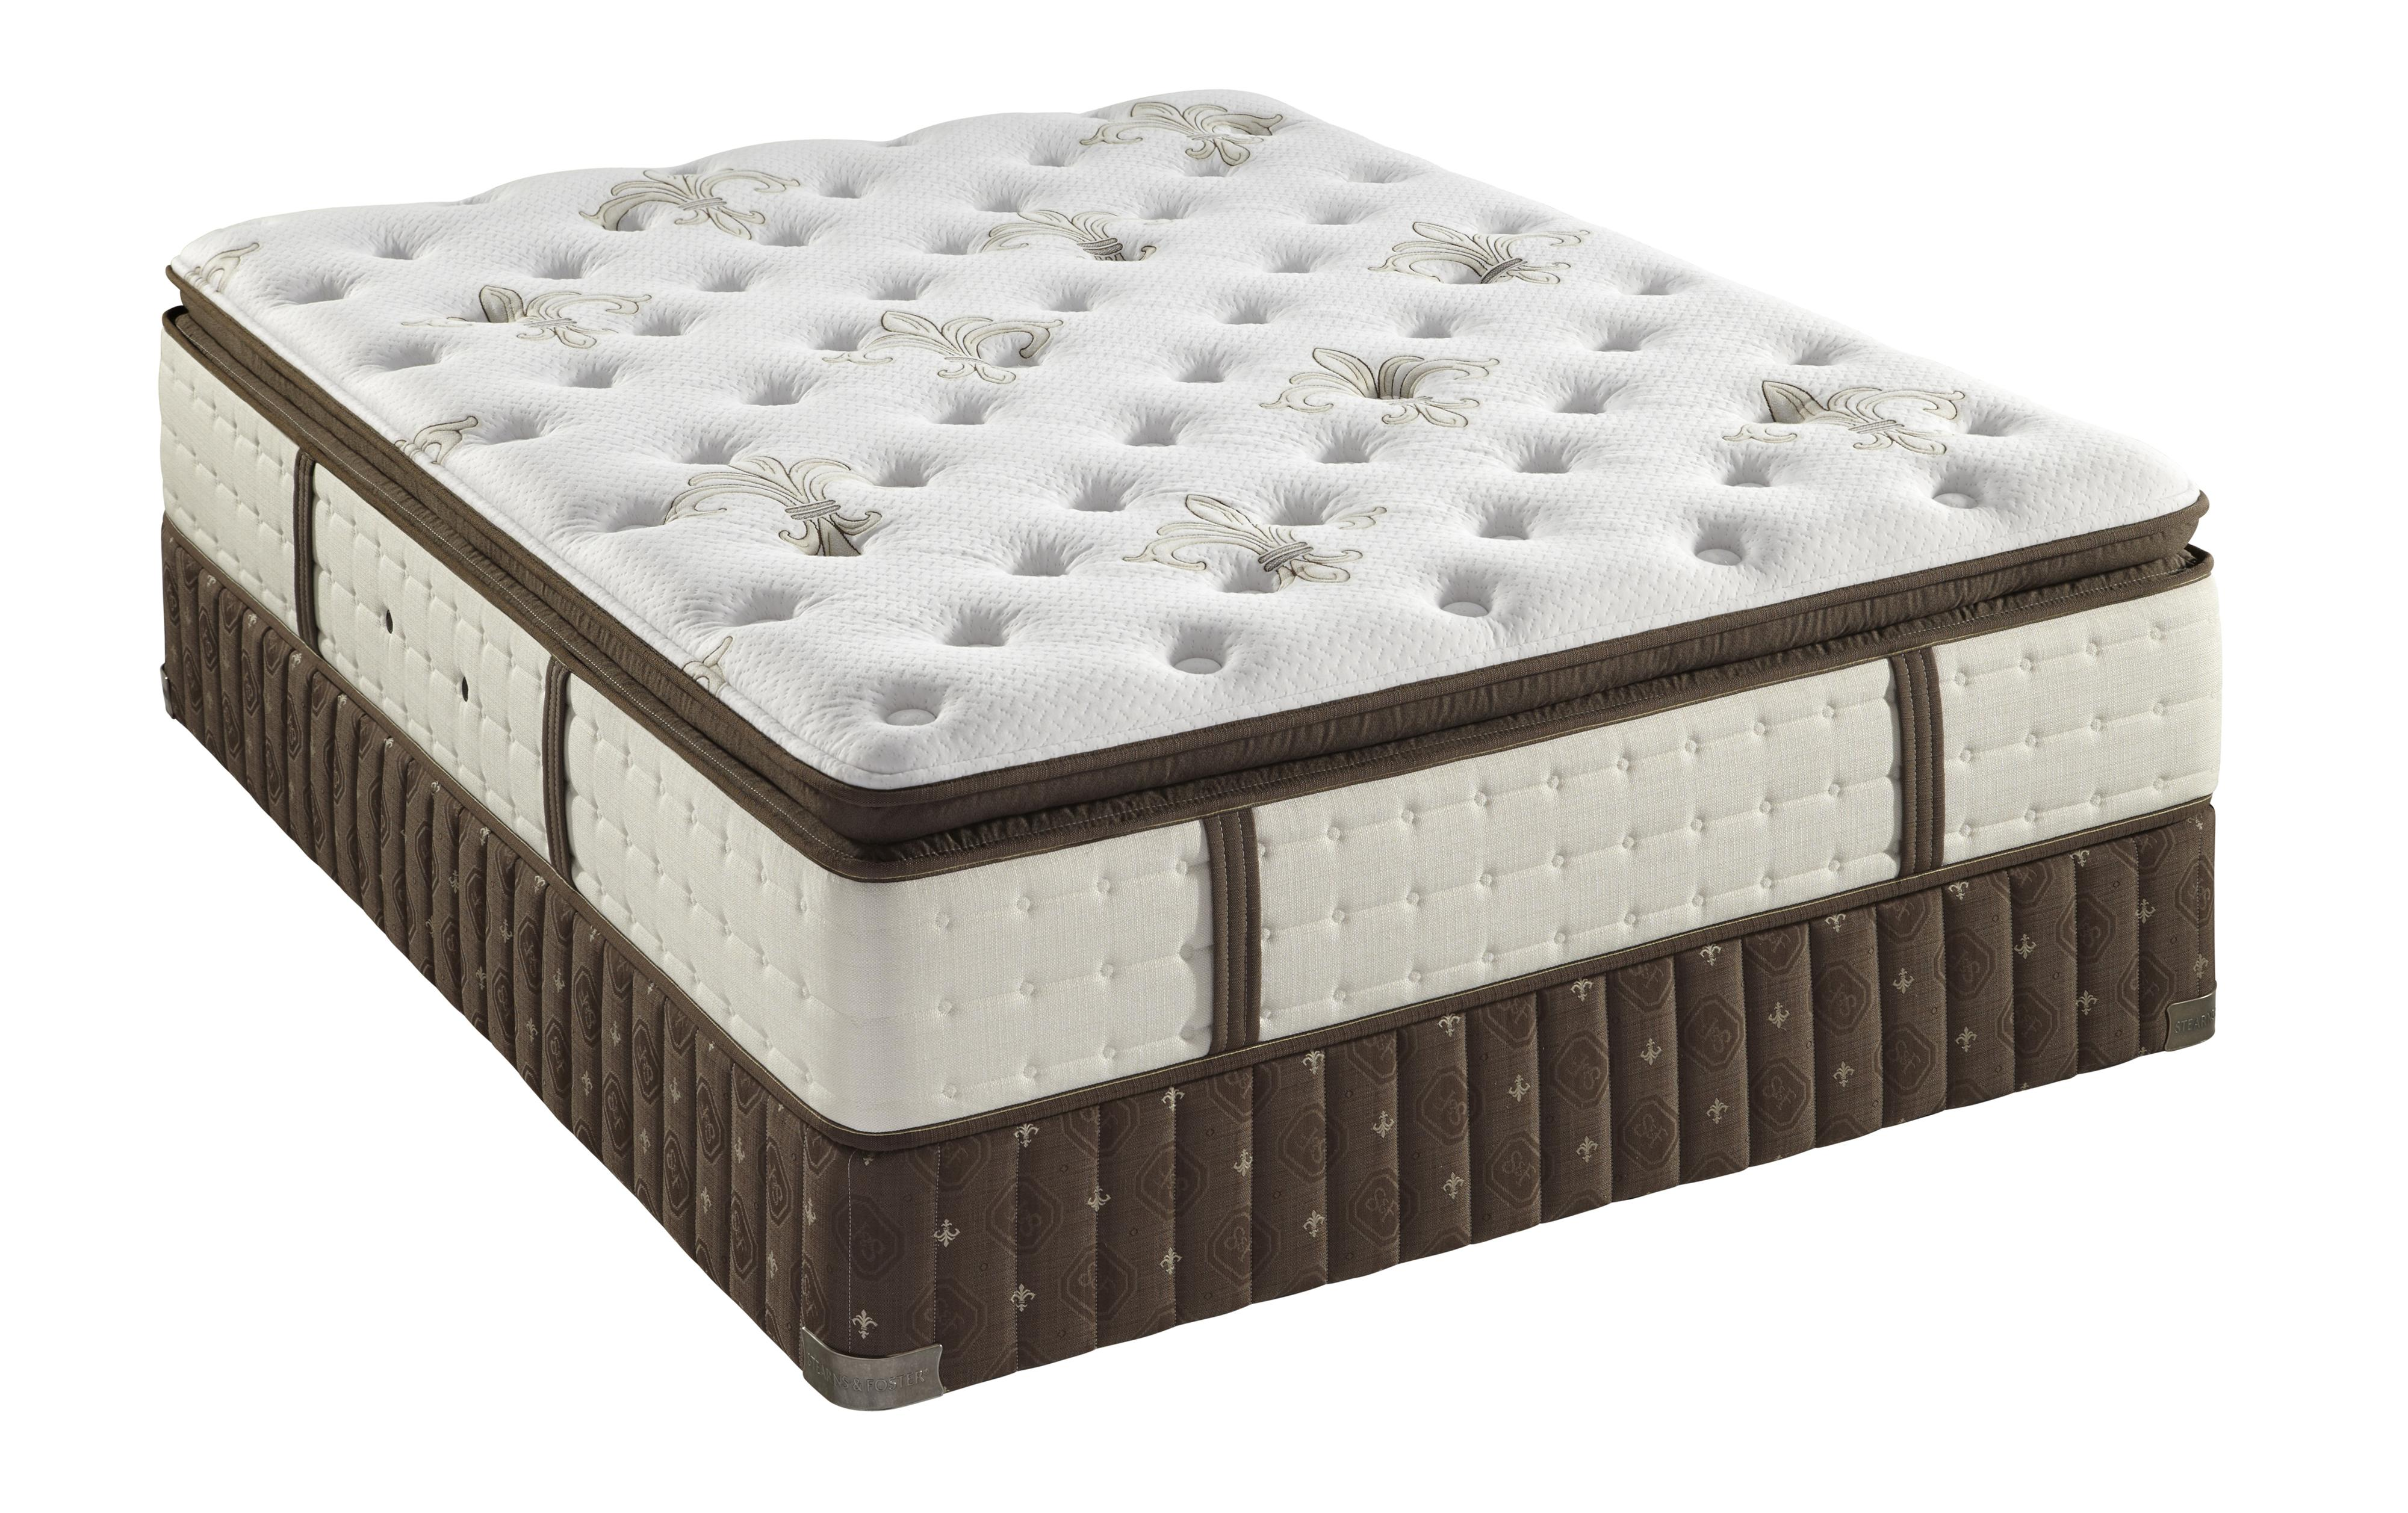 Stearns & Foster Coningsby Queen Plush Euro Pillow Top Mattress Set - Item Number: PlushEPT-Q+608615Q